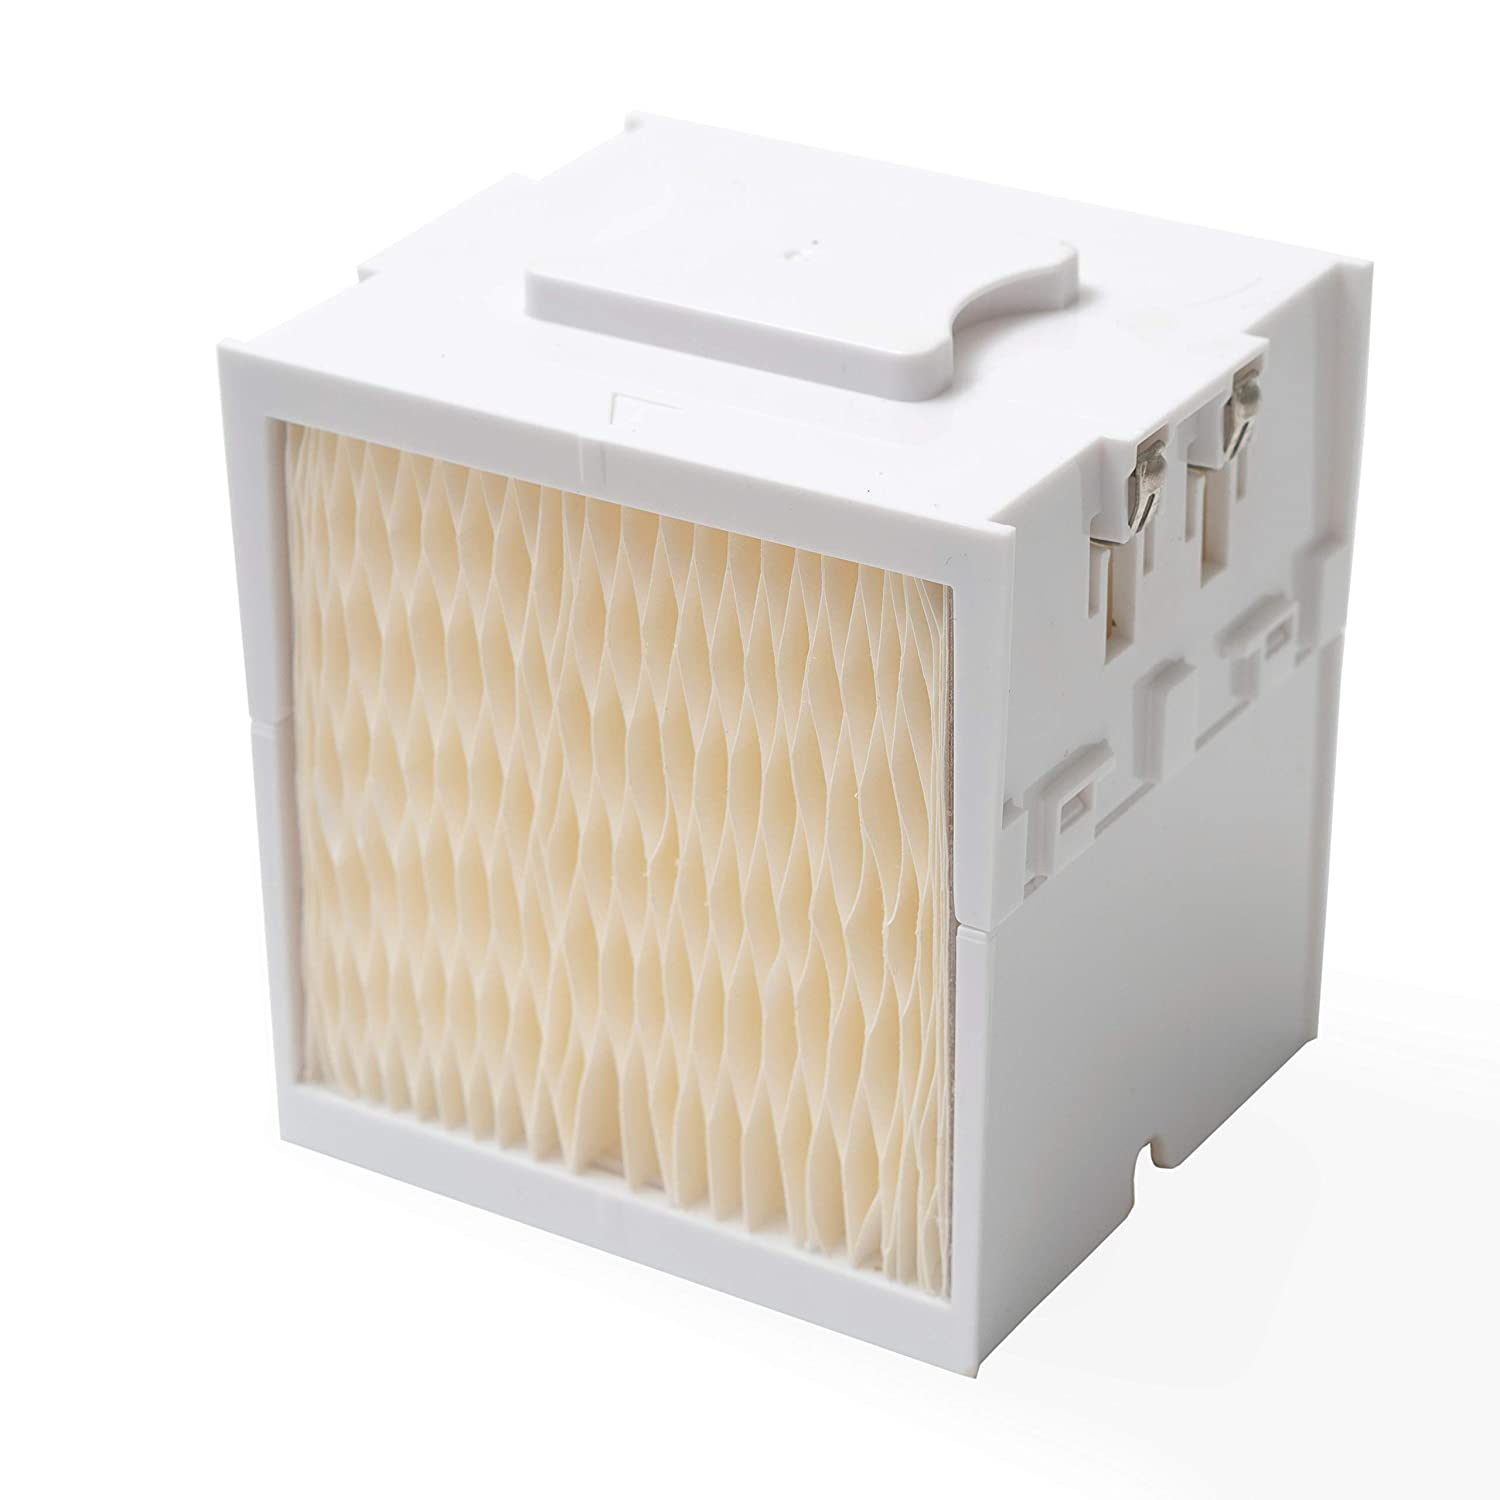 11x11x 12cm Kenley Replacement Filter for Personal Air Conditioner Evaporative Cartridge Compatible With Arctic Air Portable Camping Cooler